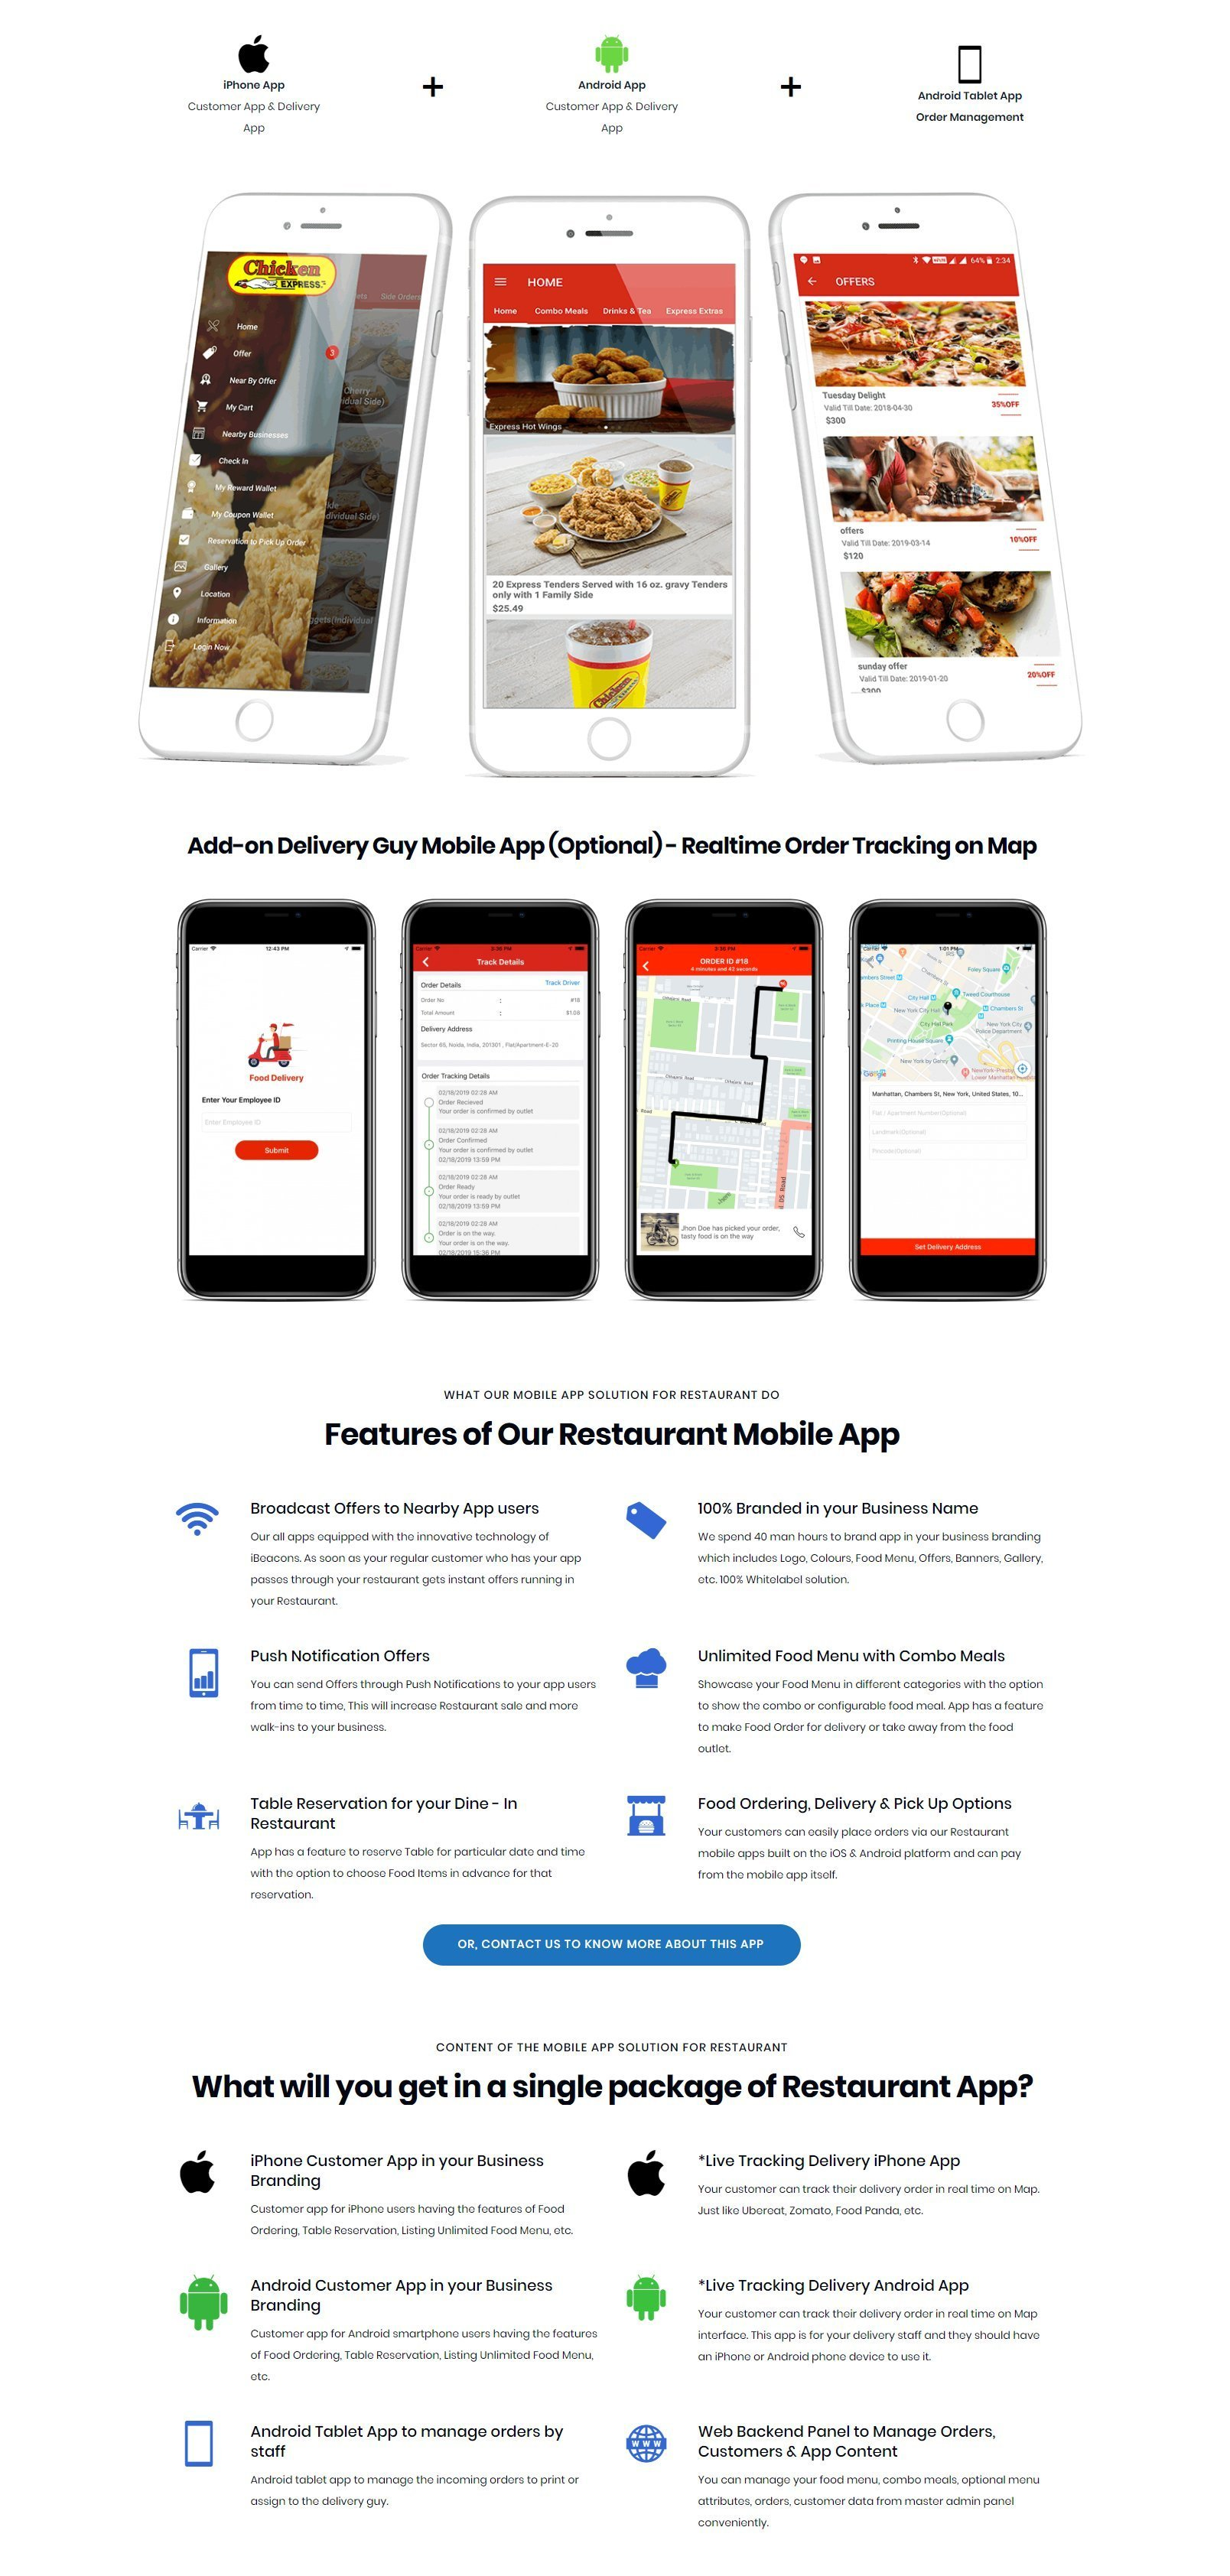 features-of-restaurant-mobile-app